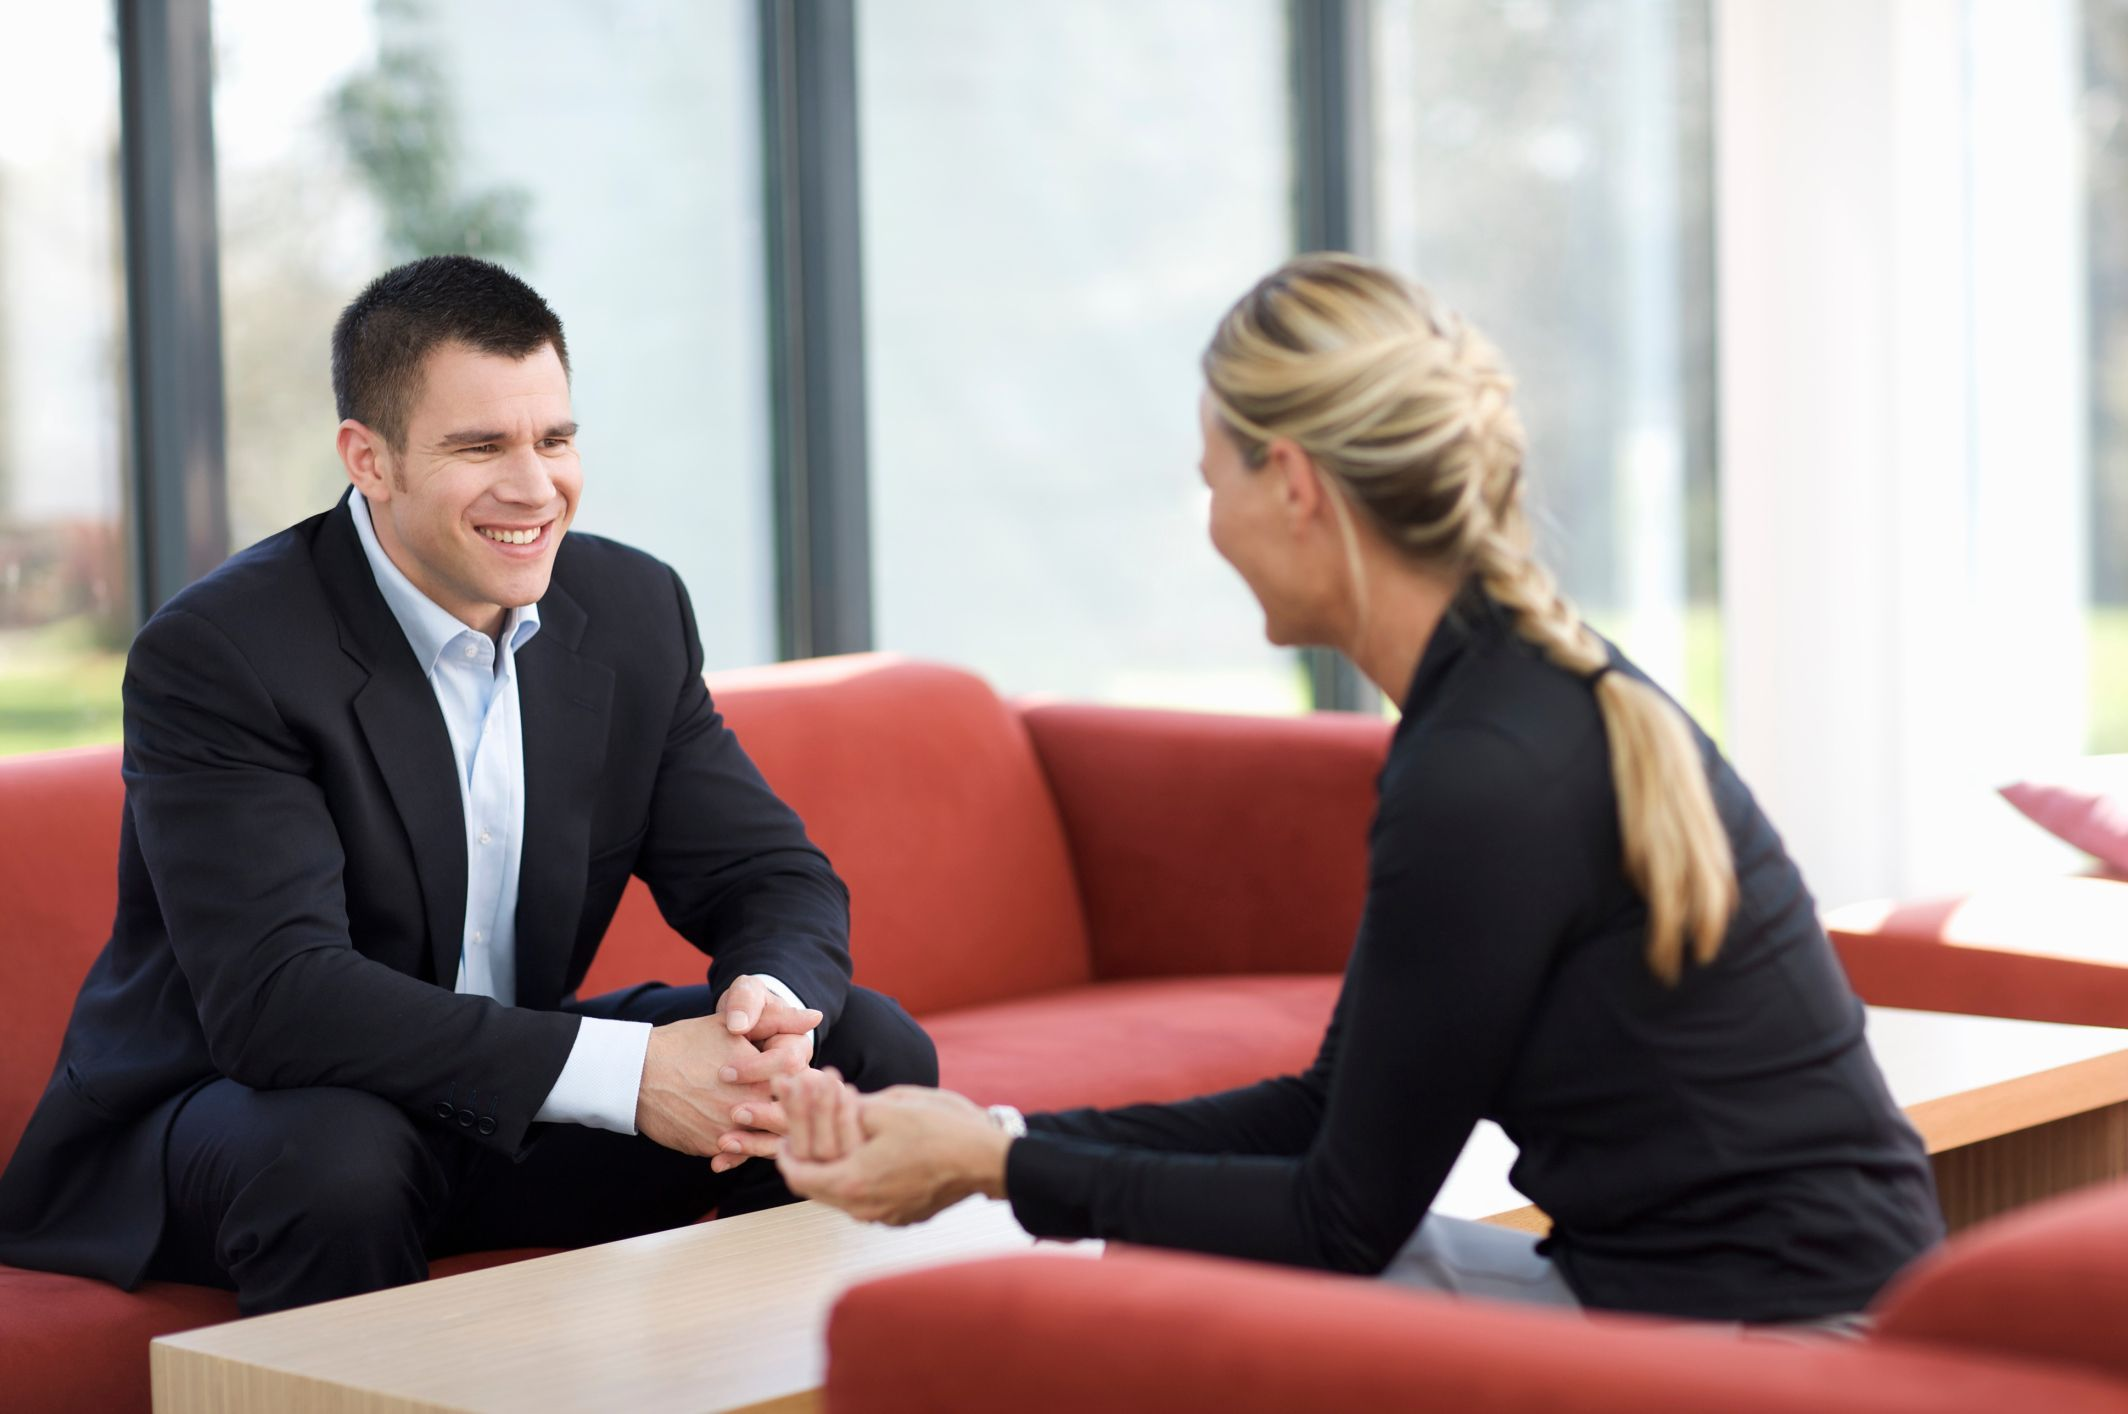 Ready To Interview For Your First Job? First Interviews Are Exciting And  Also Intimidating At The Same Time. If You Put In The Right Level Of  Preparation ...